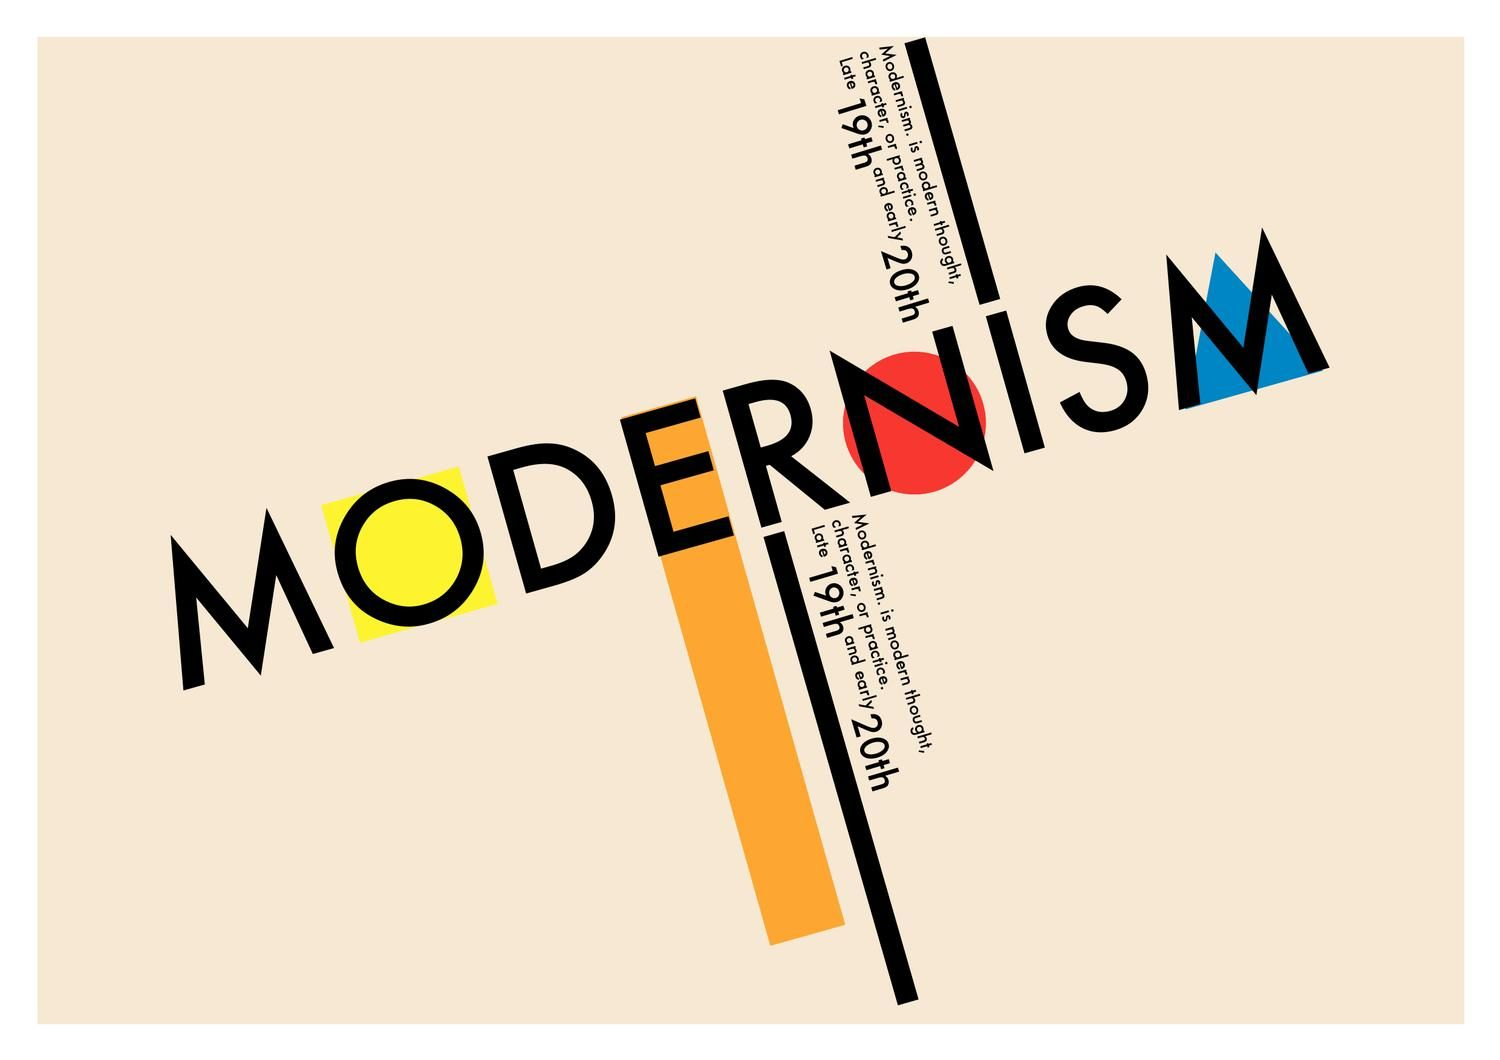 Research Modernism And Postmodernism Postmodernism Modernist Typography Book Design Layout